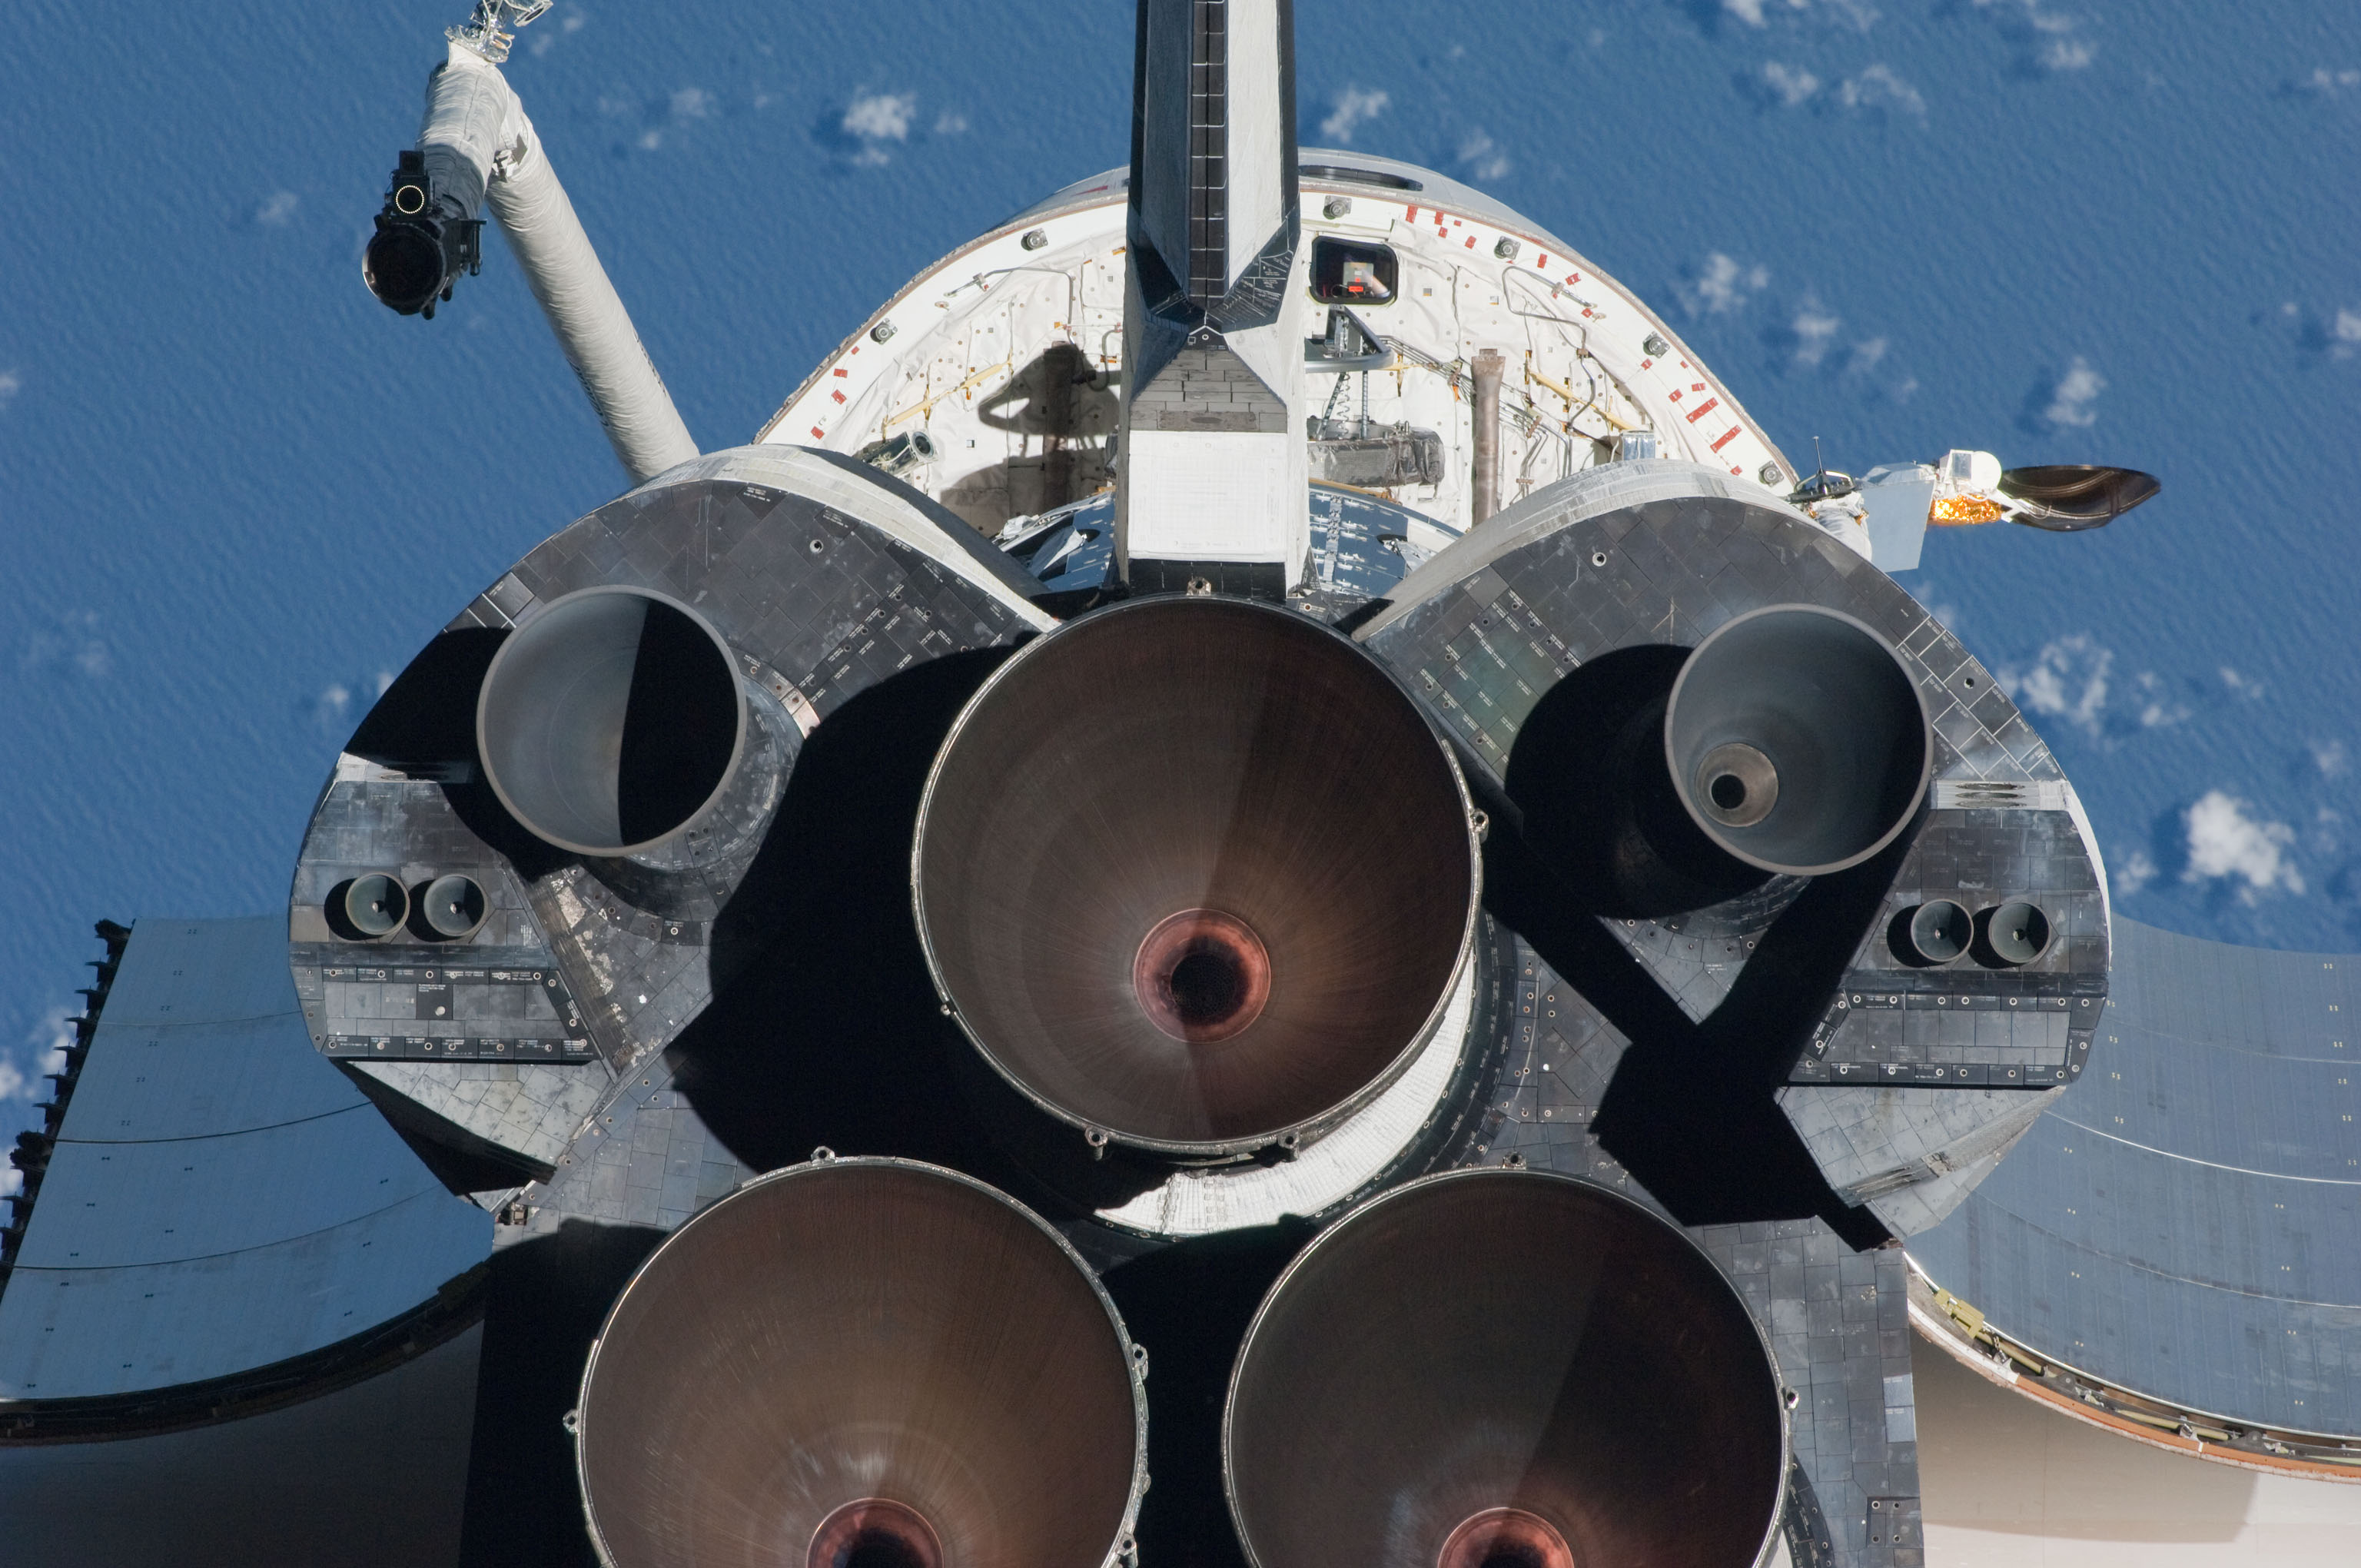 space shuttle oms - photo #36